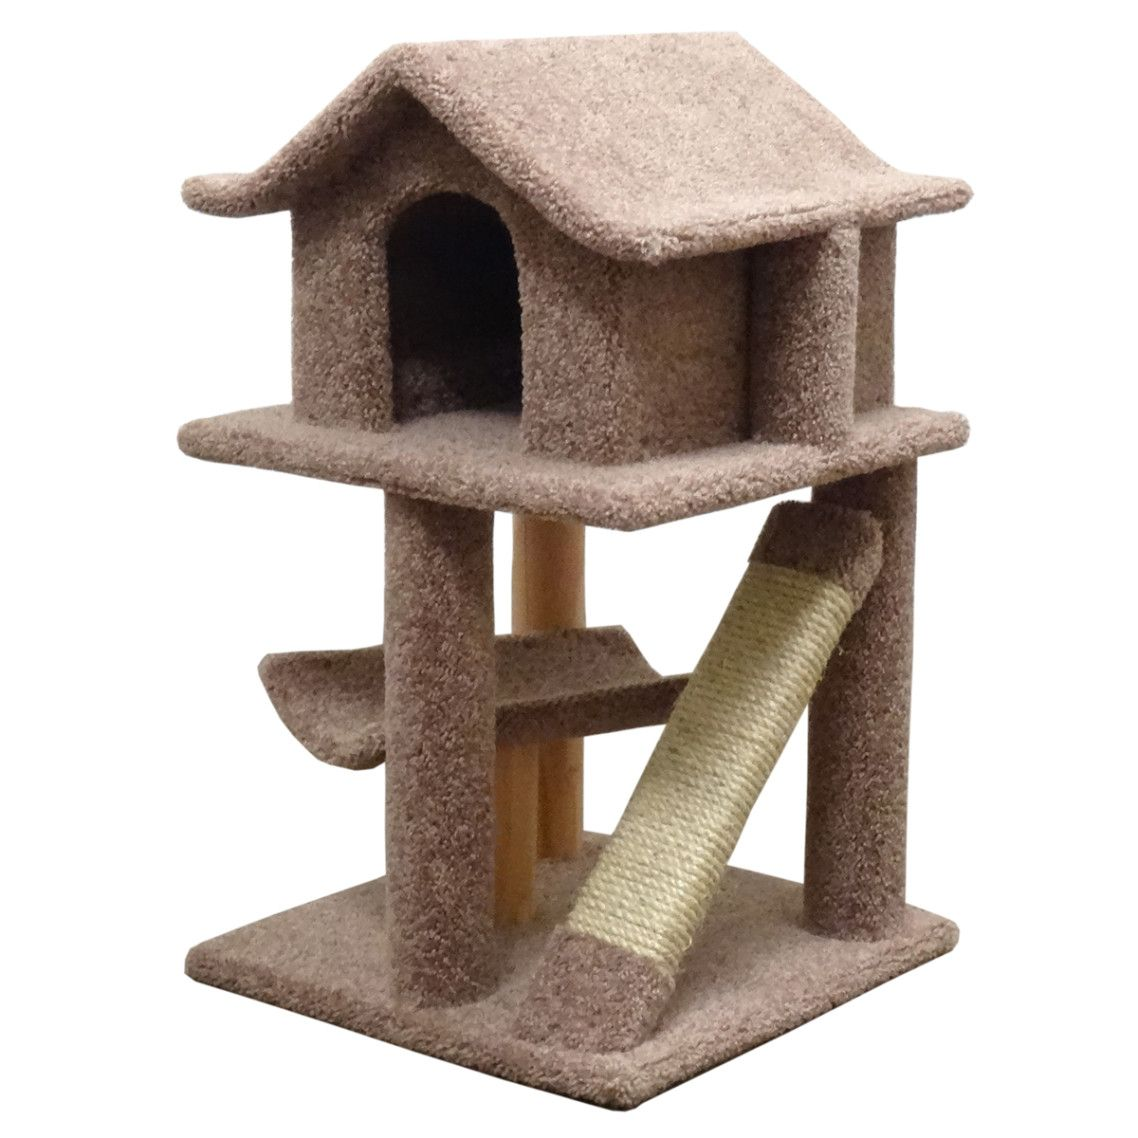 Dazzling Unique Cat Tree House Design Ideas With Brown Color Pagoda Shape  Cat House And Combine